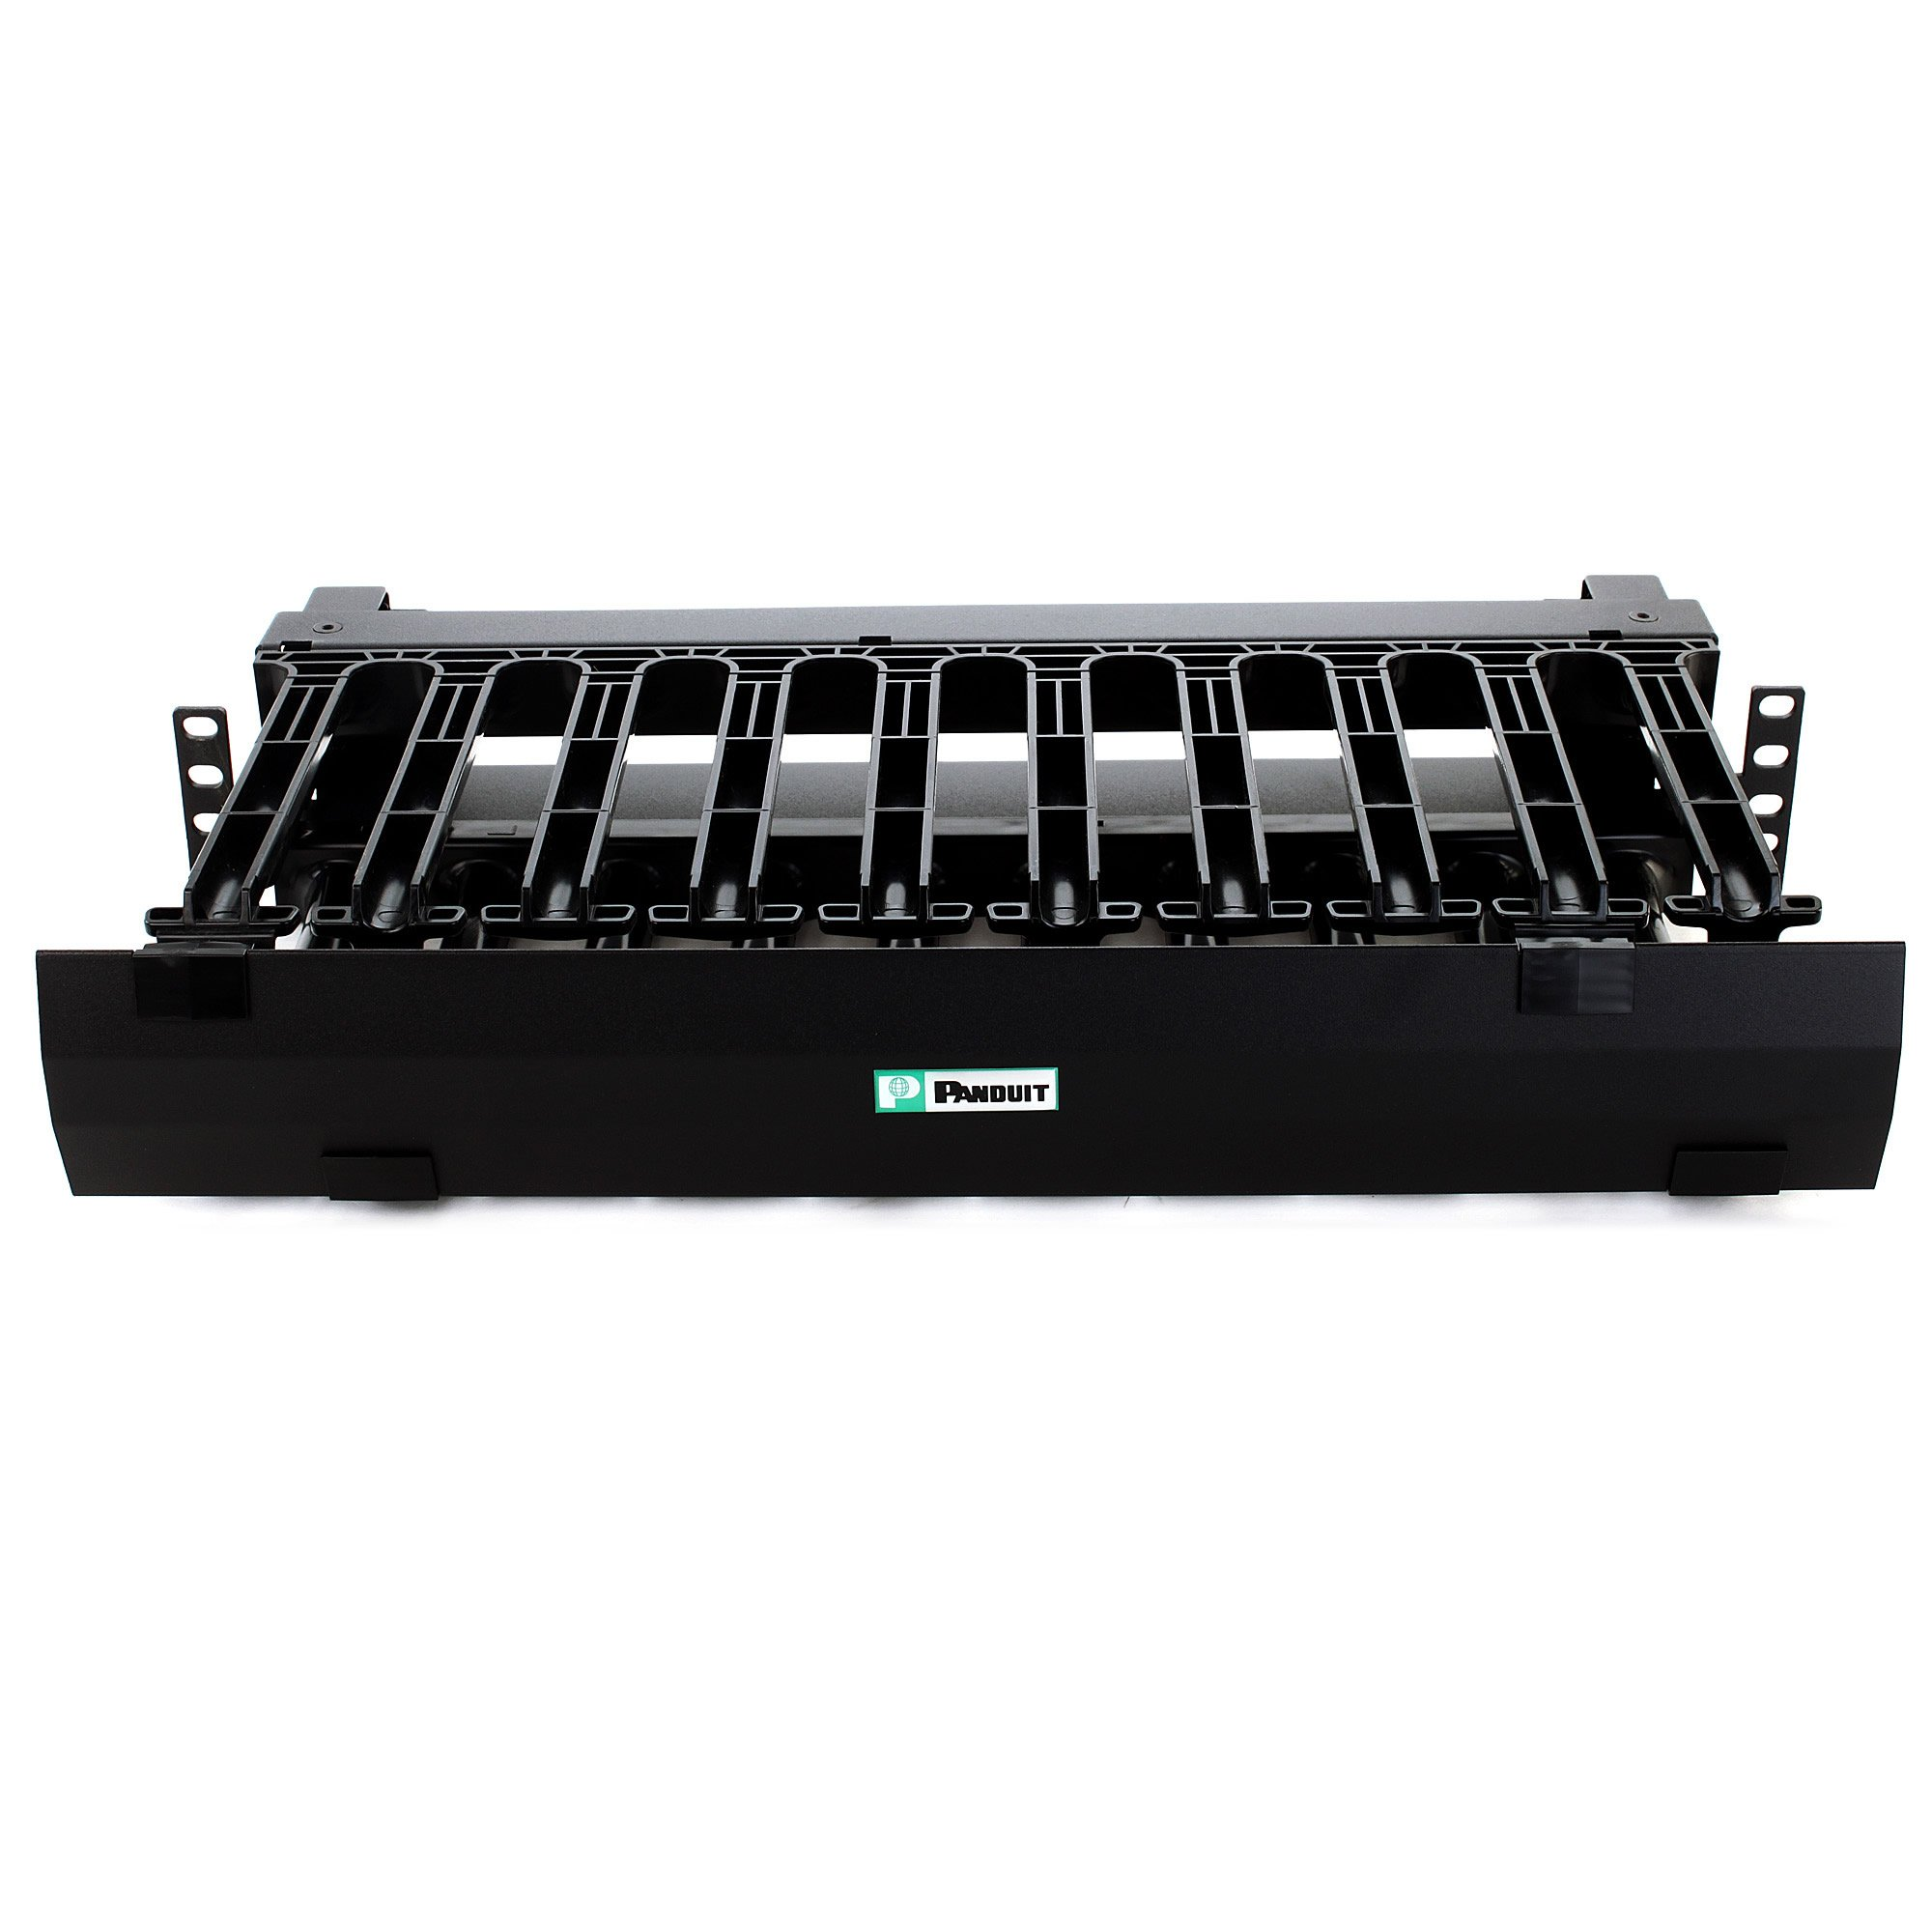 Panduit PatchRunner High Capacity Horizontal Cable Manager Rack cable management panel (horizontal) with cover